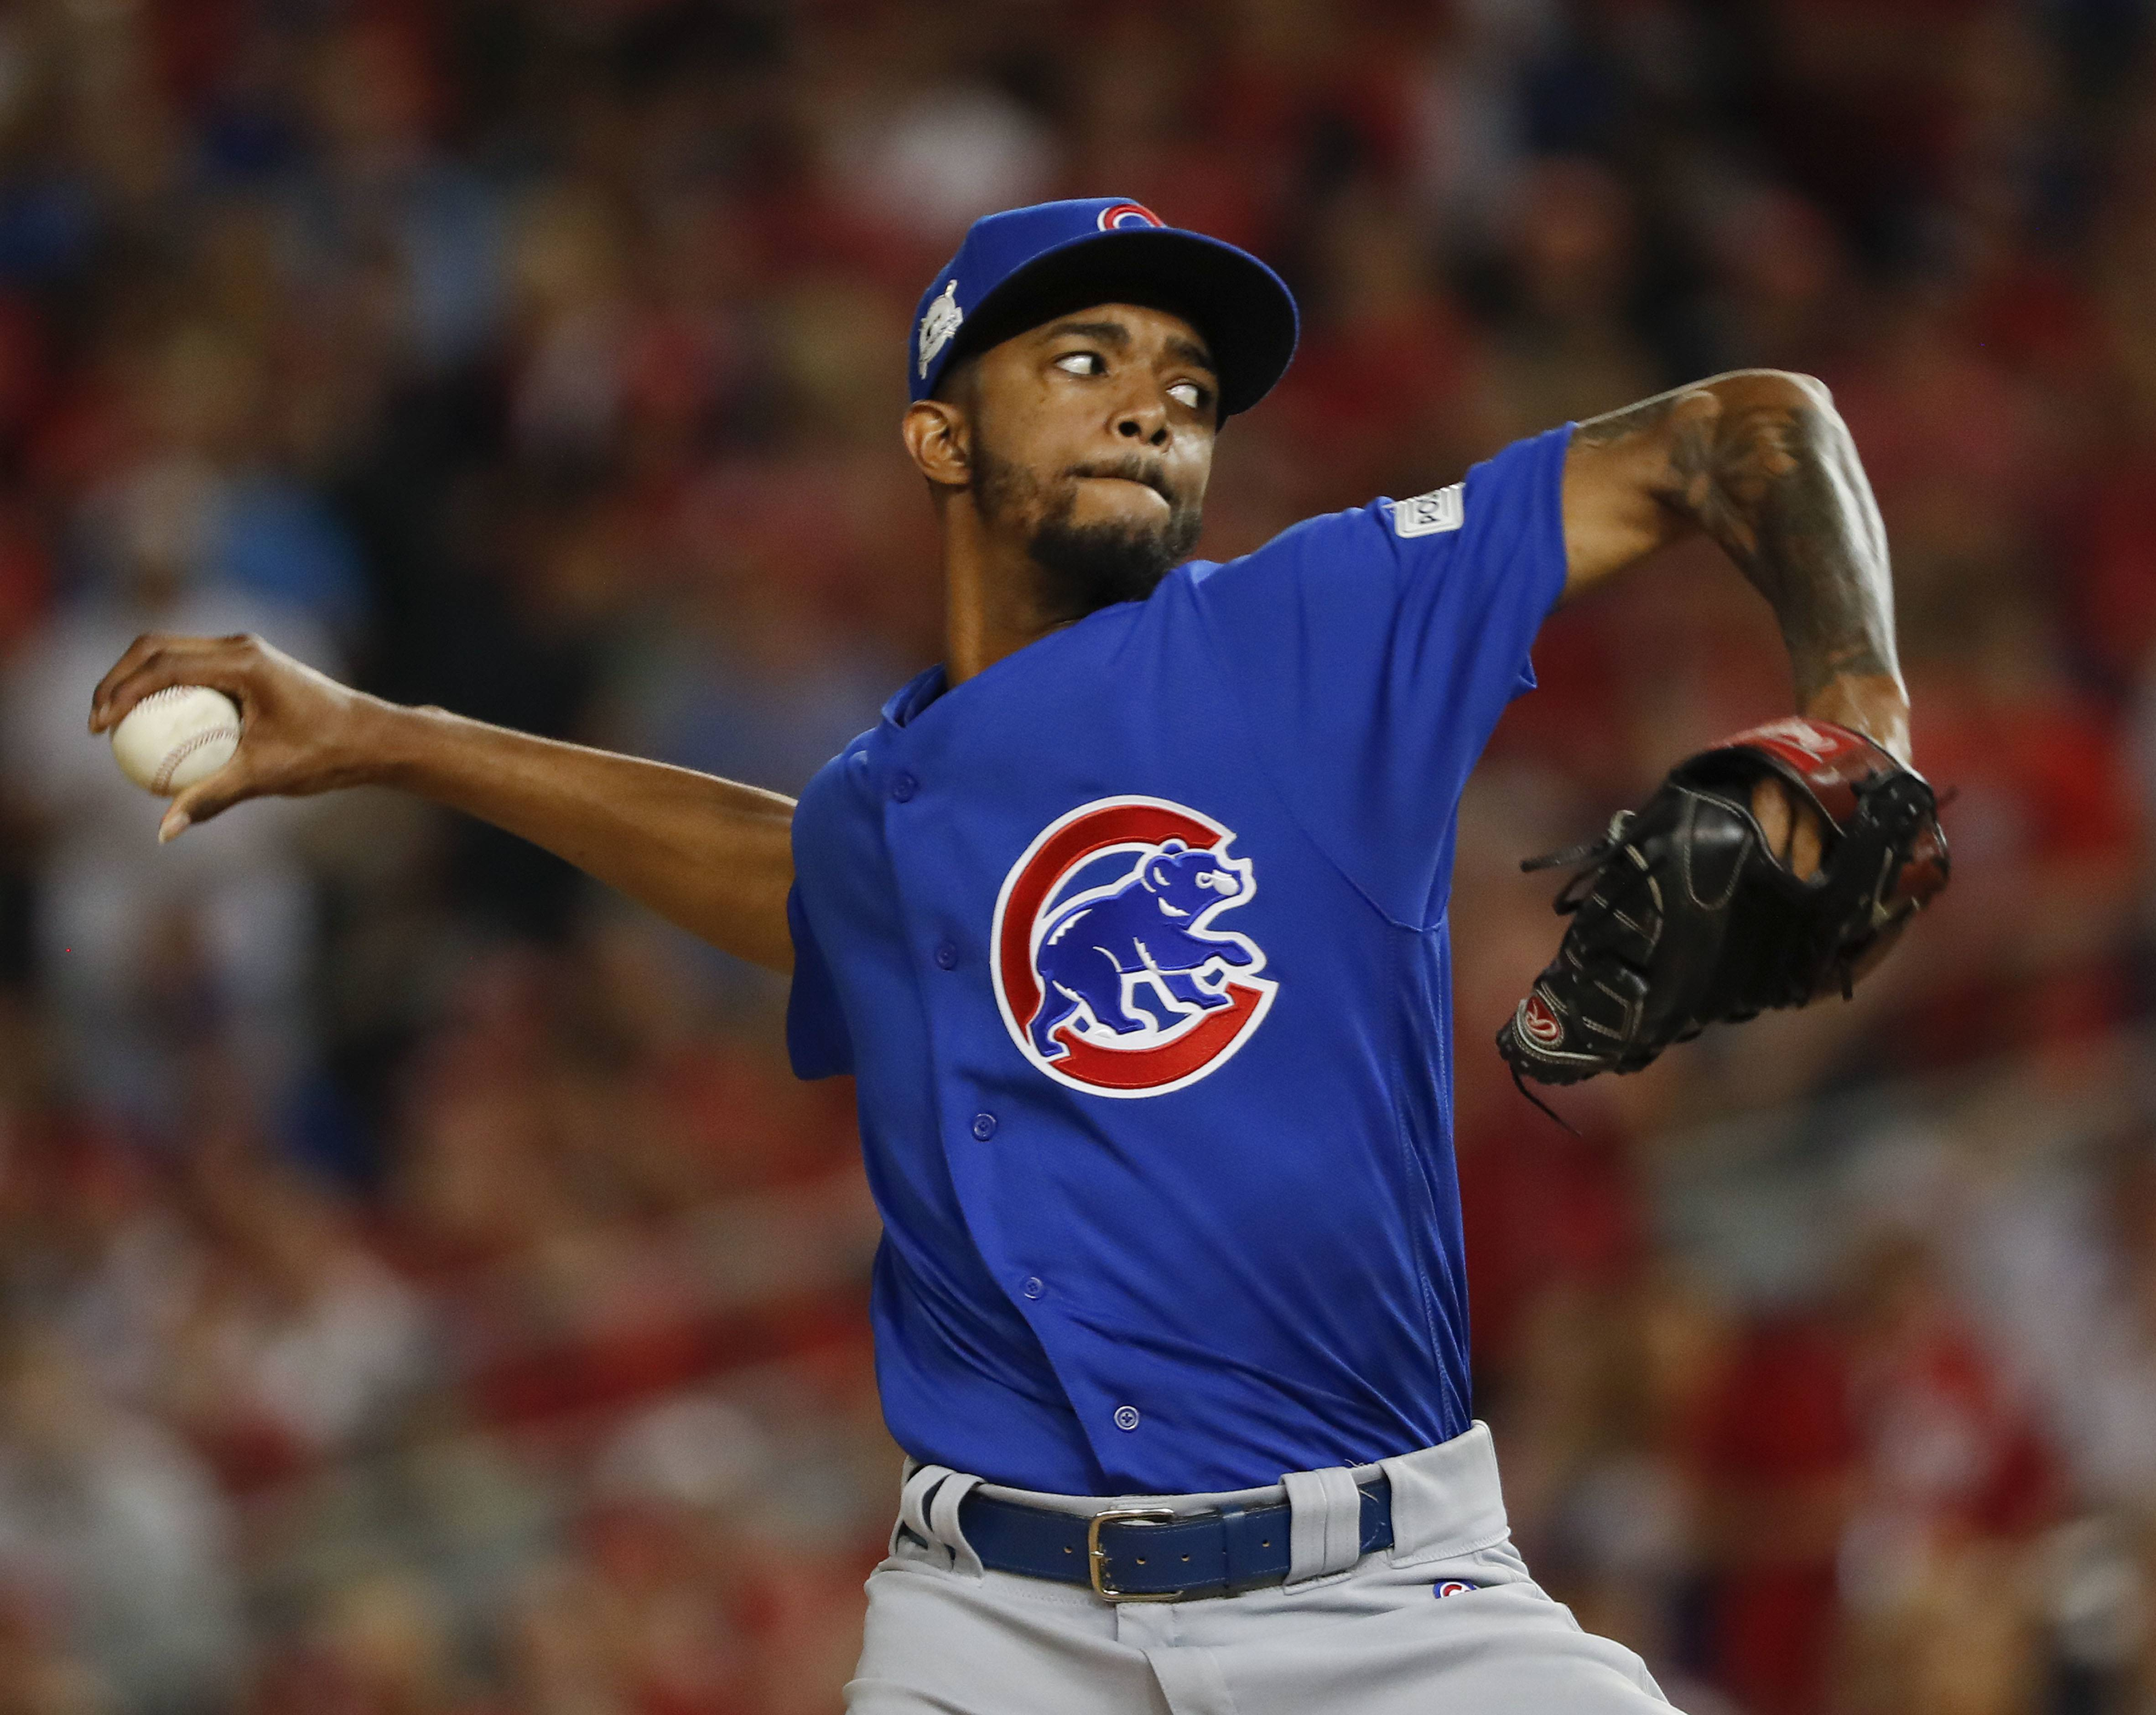 Maddon remains confident in Edwards